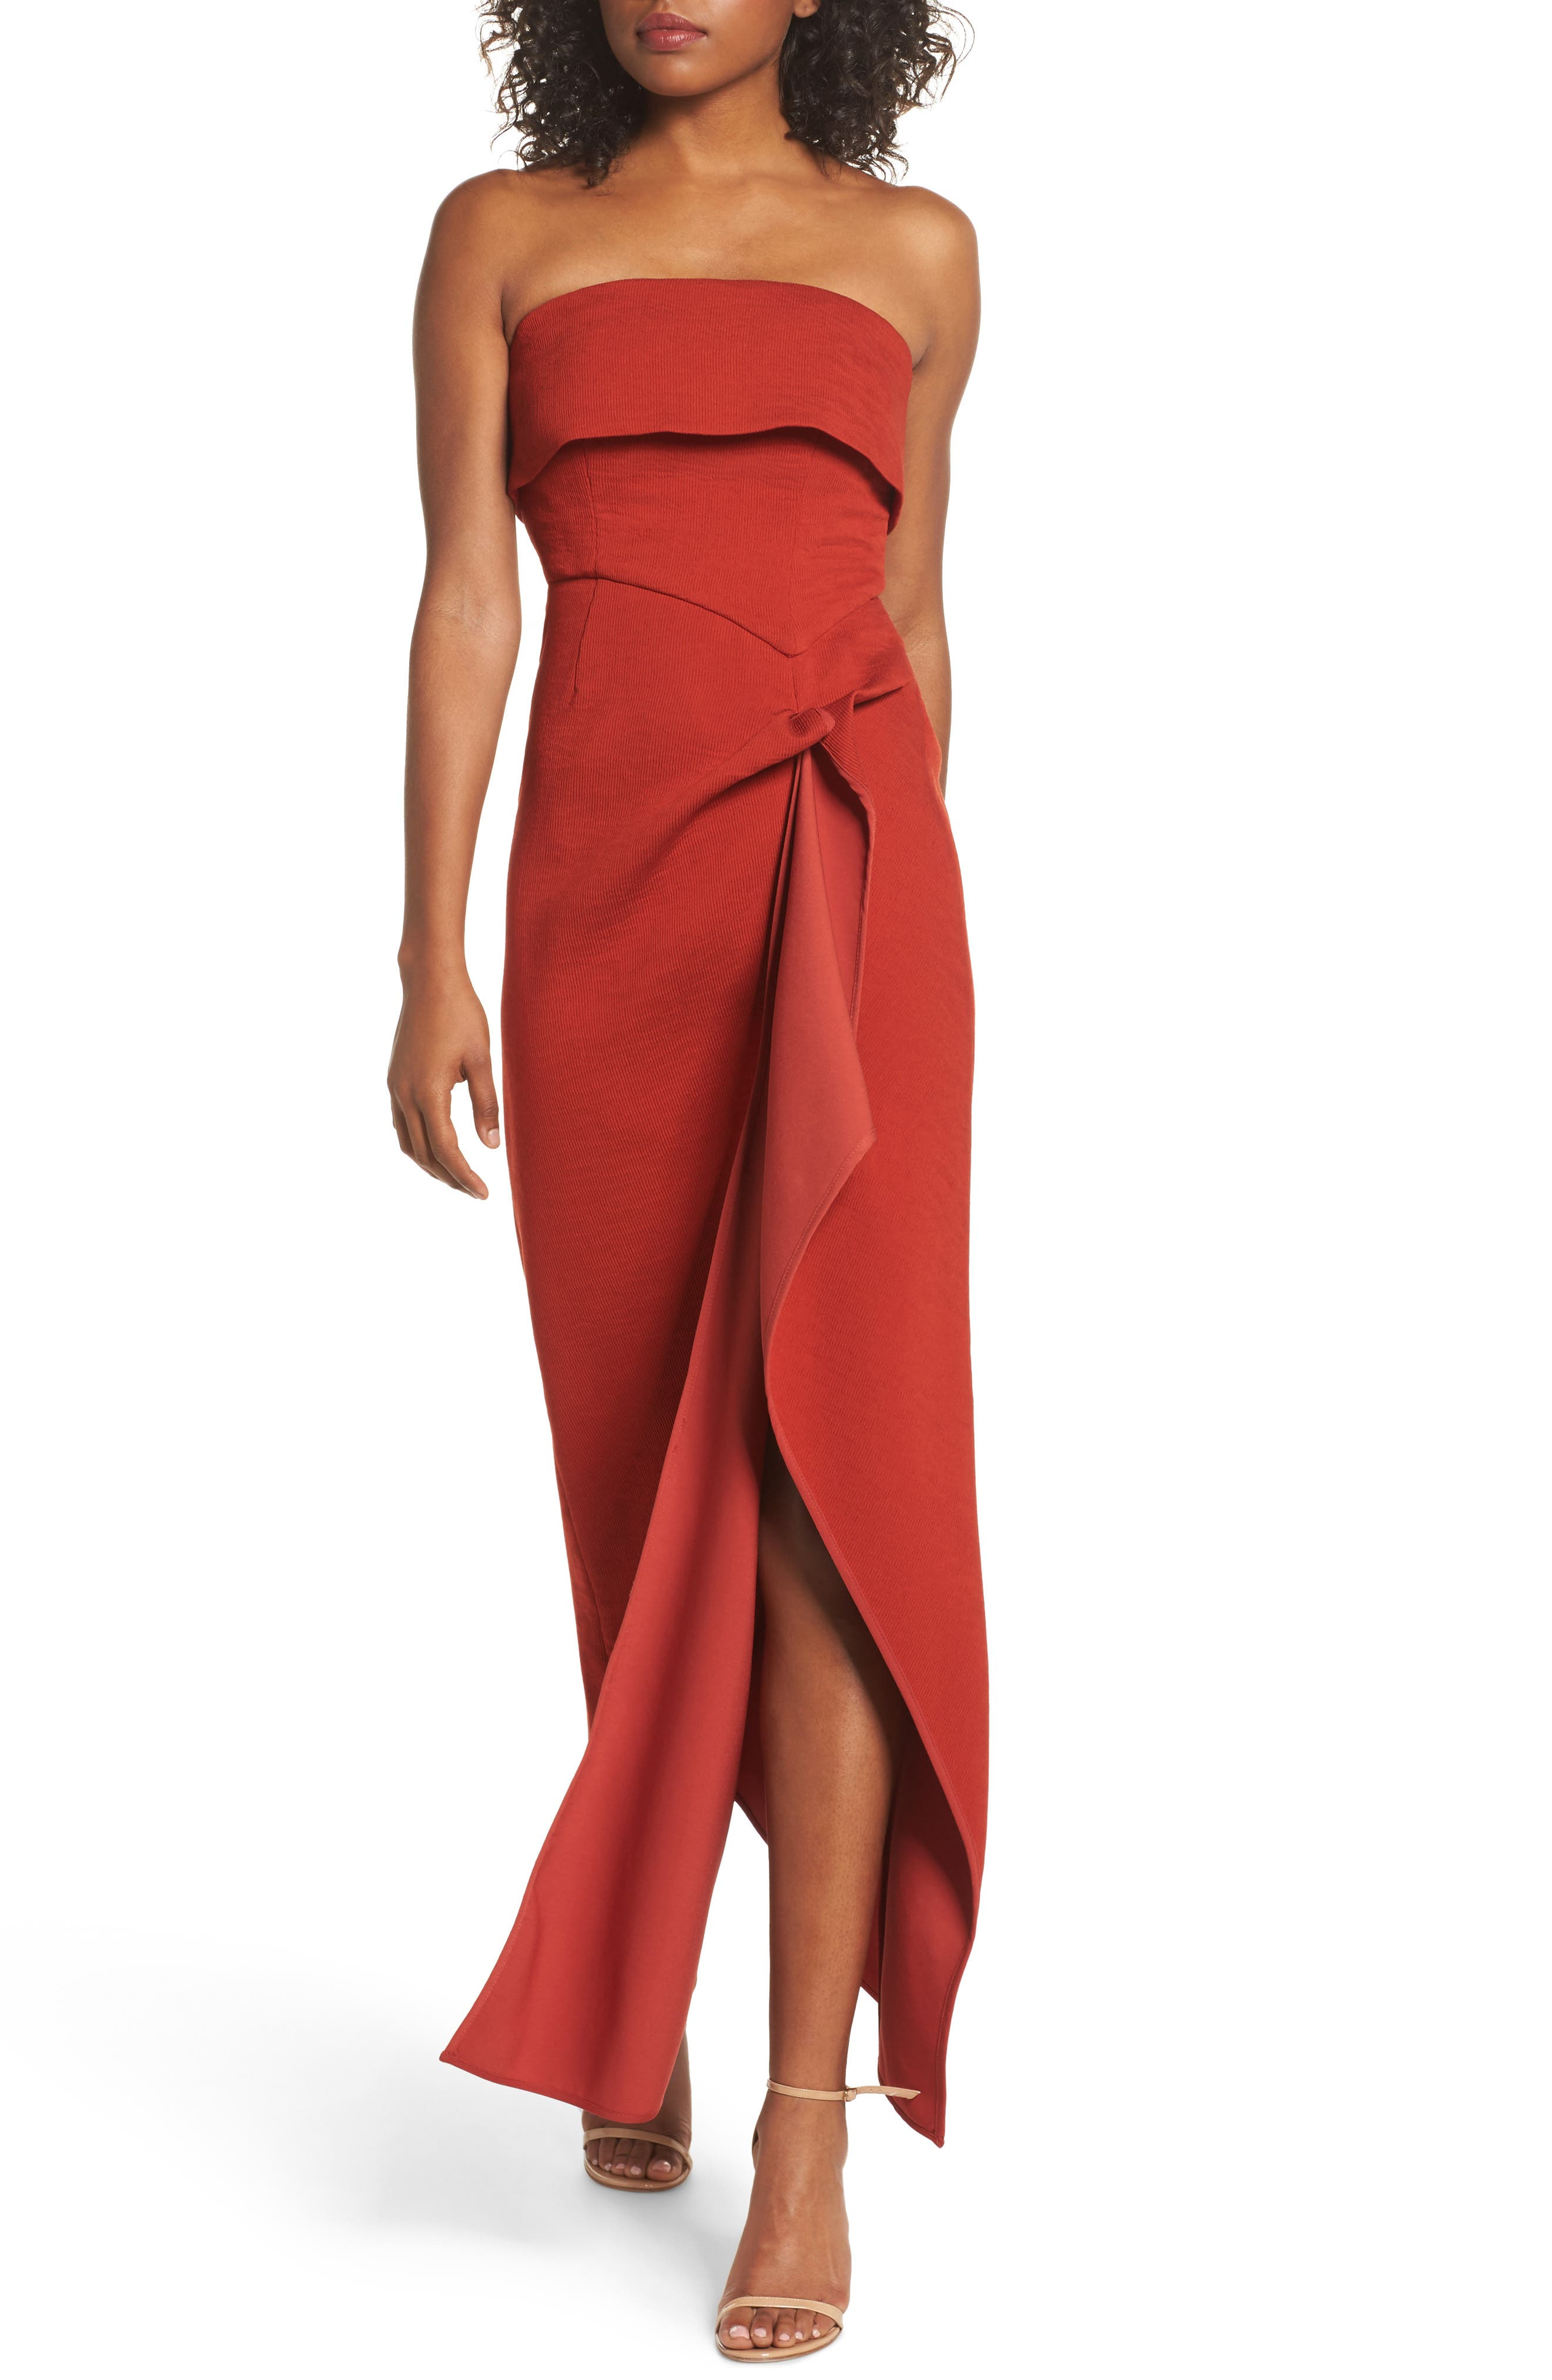 Fluidity Strapless Maxi Dress,                             Main thumbnail 1, color,                             602